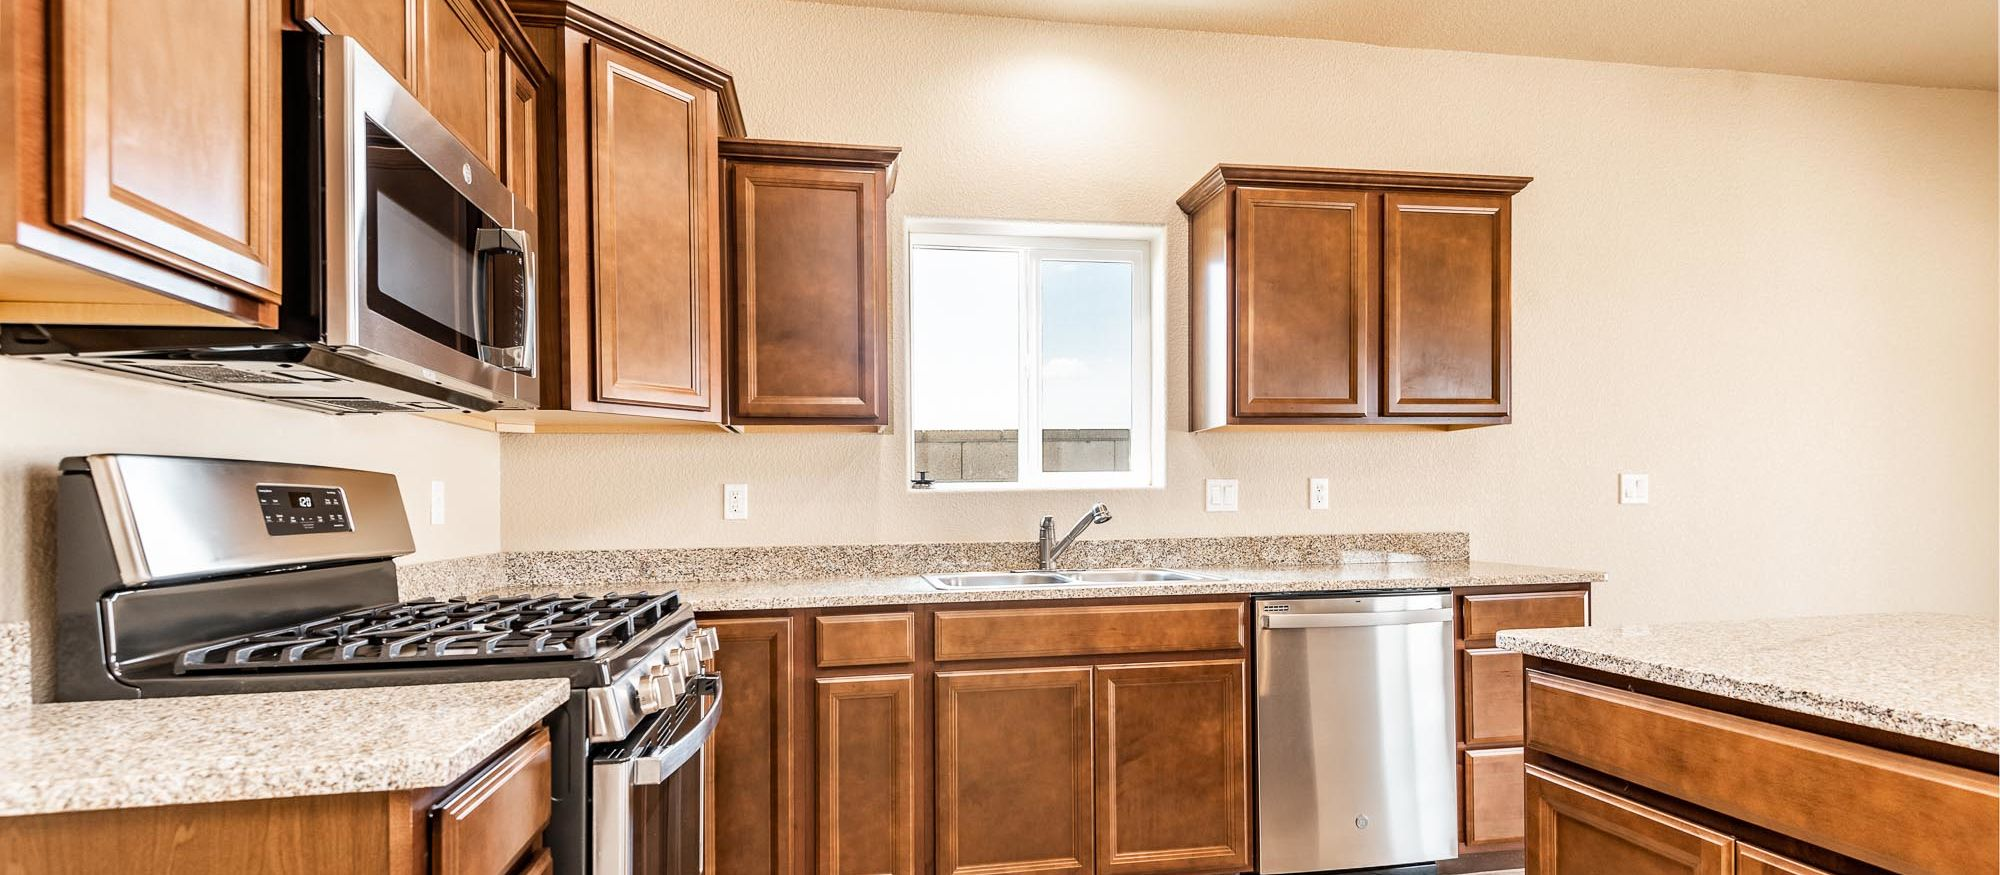 Kitchen featured in the Desert Rose 1472 3 Car By Angle Homes in Kingman-Lake Havasu City, AZ